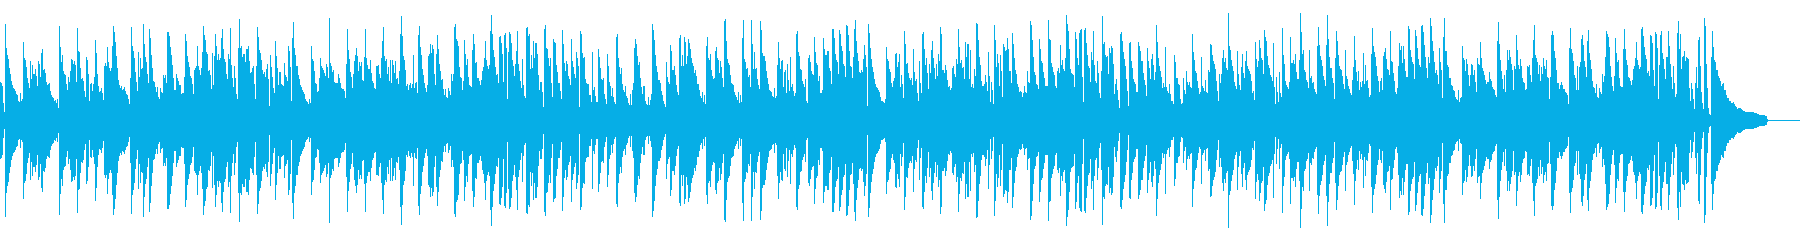 Chopin's masterpiece with elegant jazz's reproduced waveform